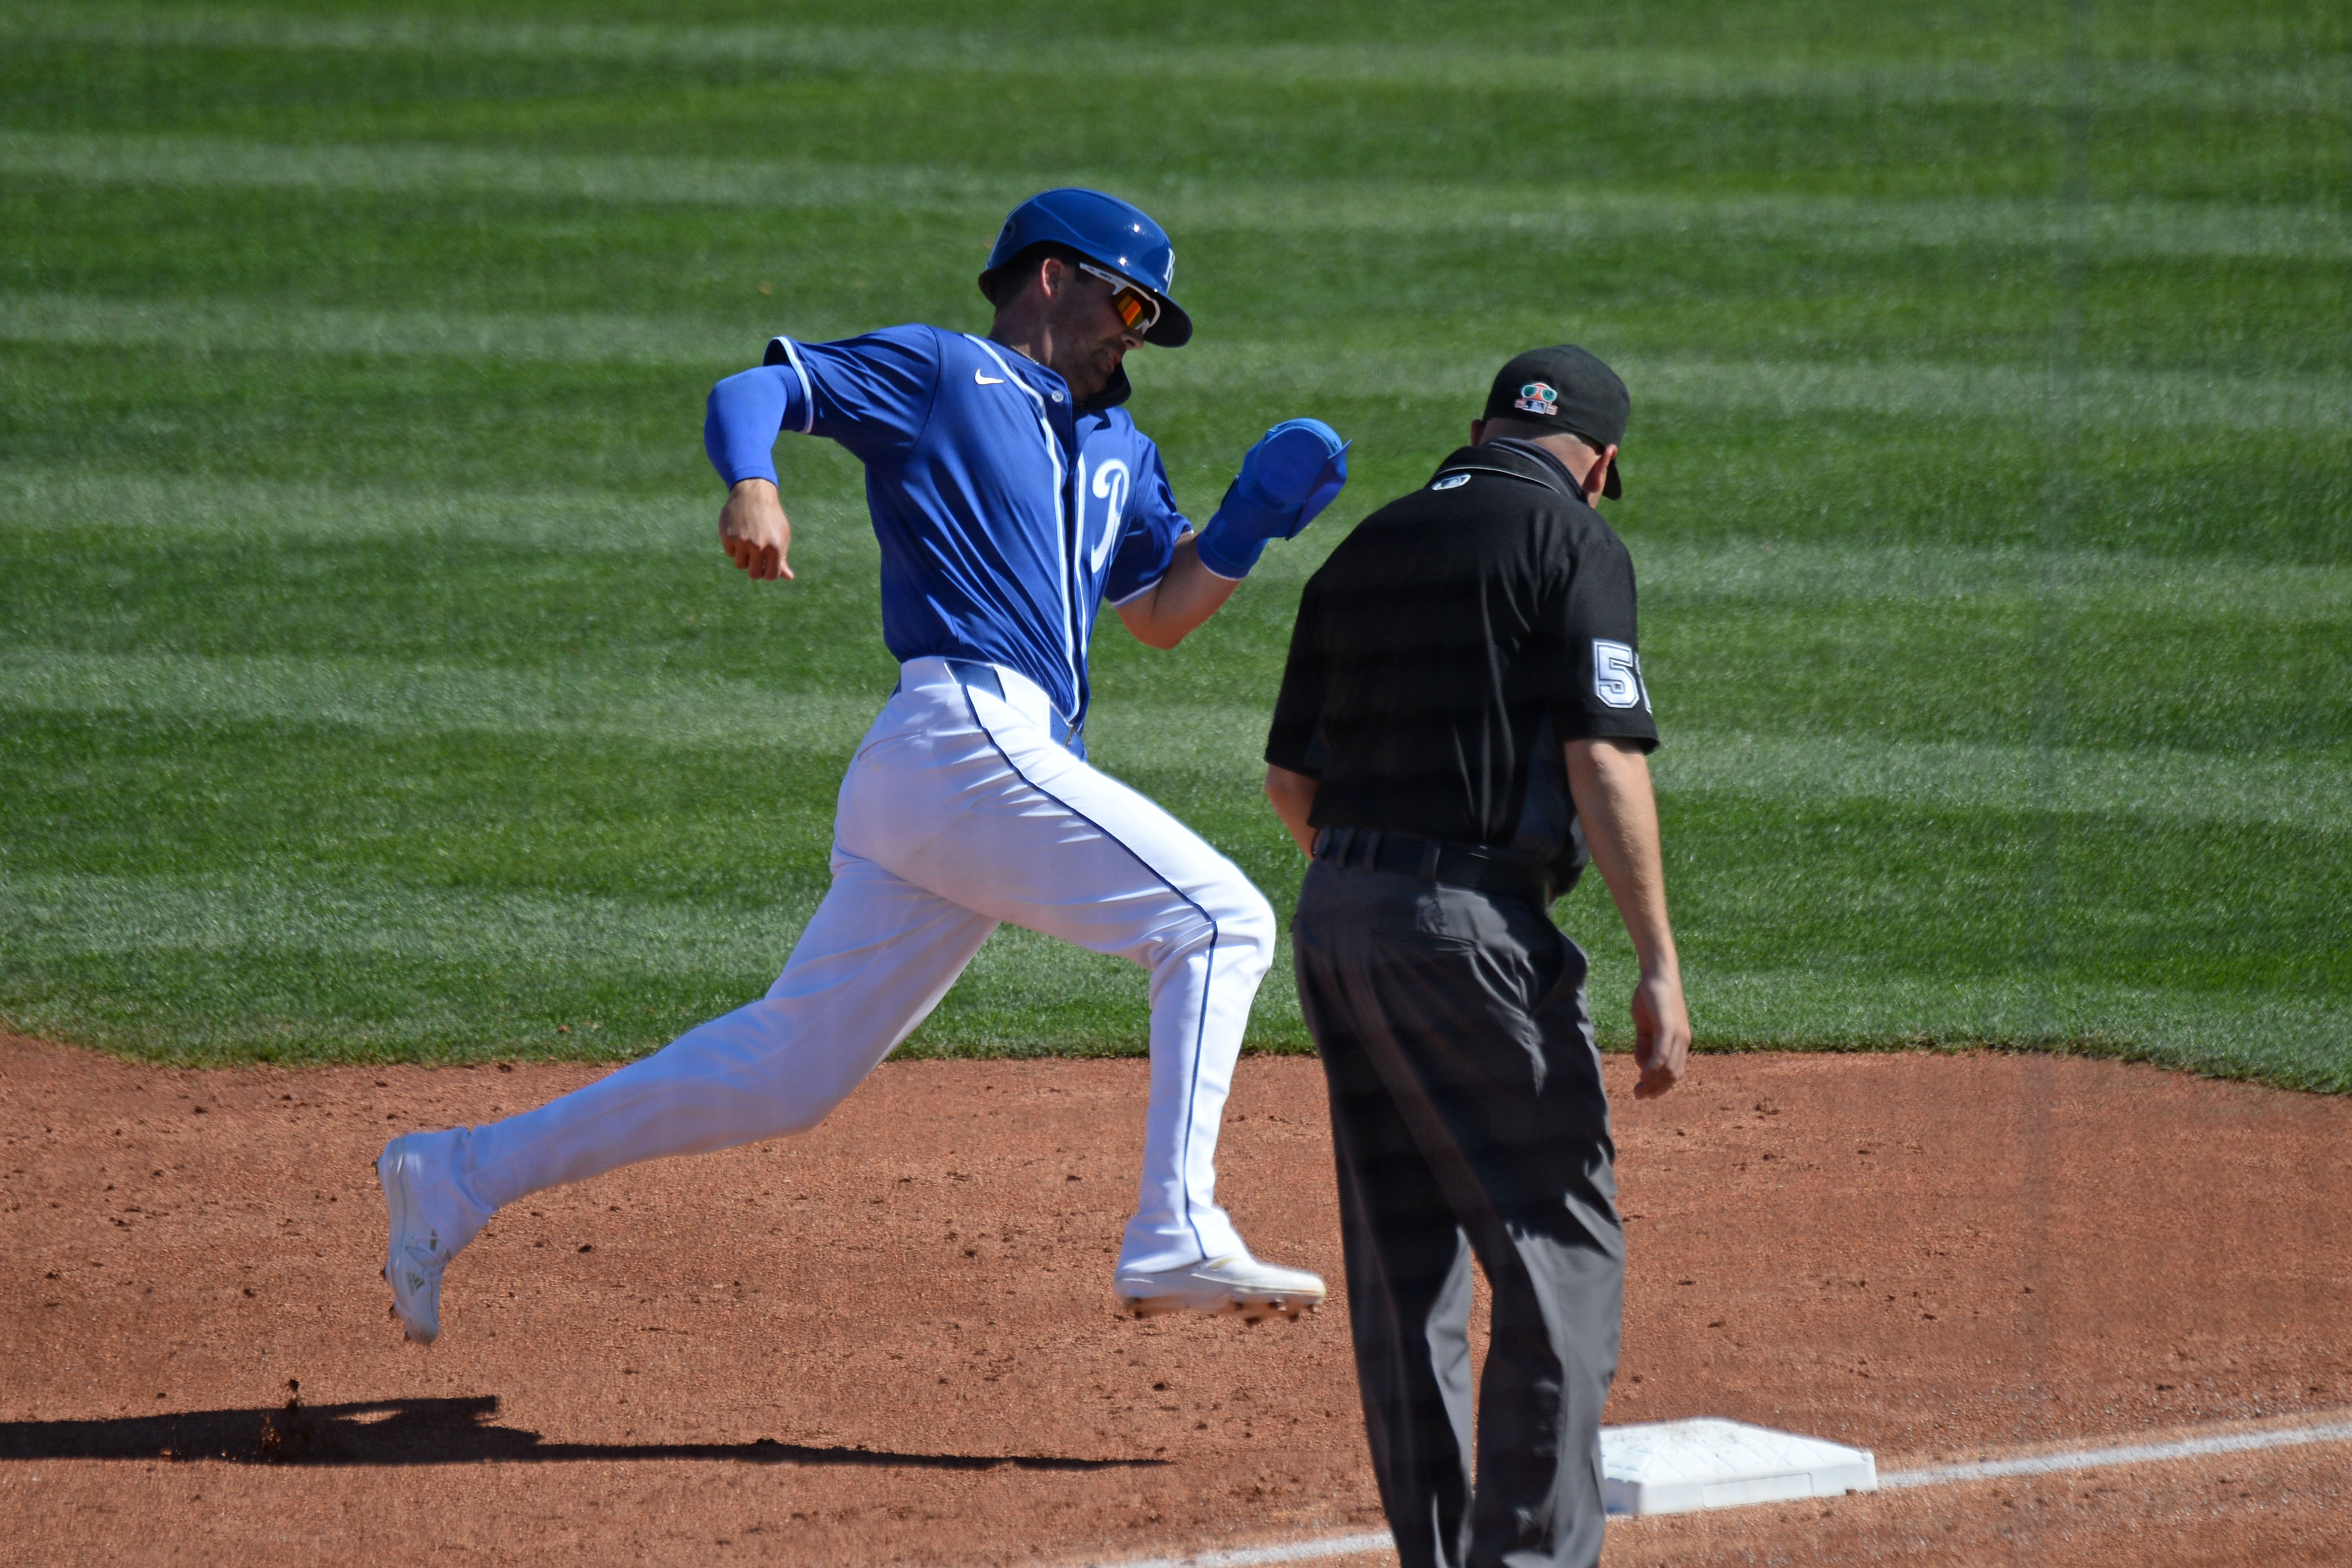 Kansas City Royals second baseman Whit Merrifield (15) rounds third base and scores a run against the Los Angeles Dodgers during the third inning of a spring training game at Surprise Stadium. Mandatory Credit: Joe Camporeale